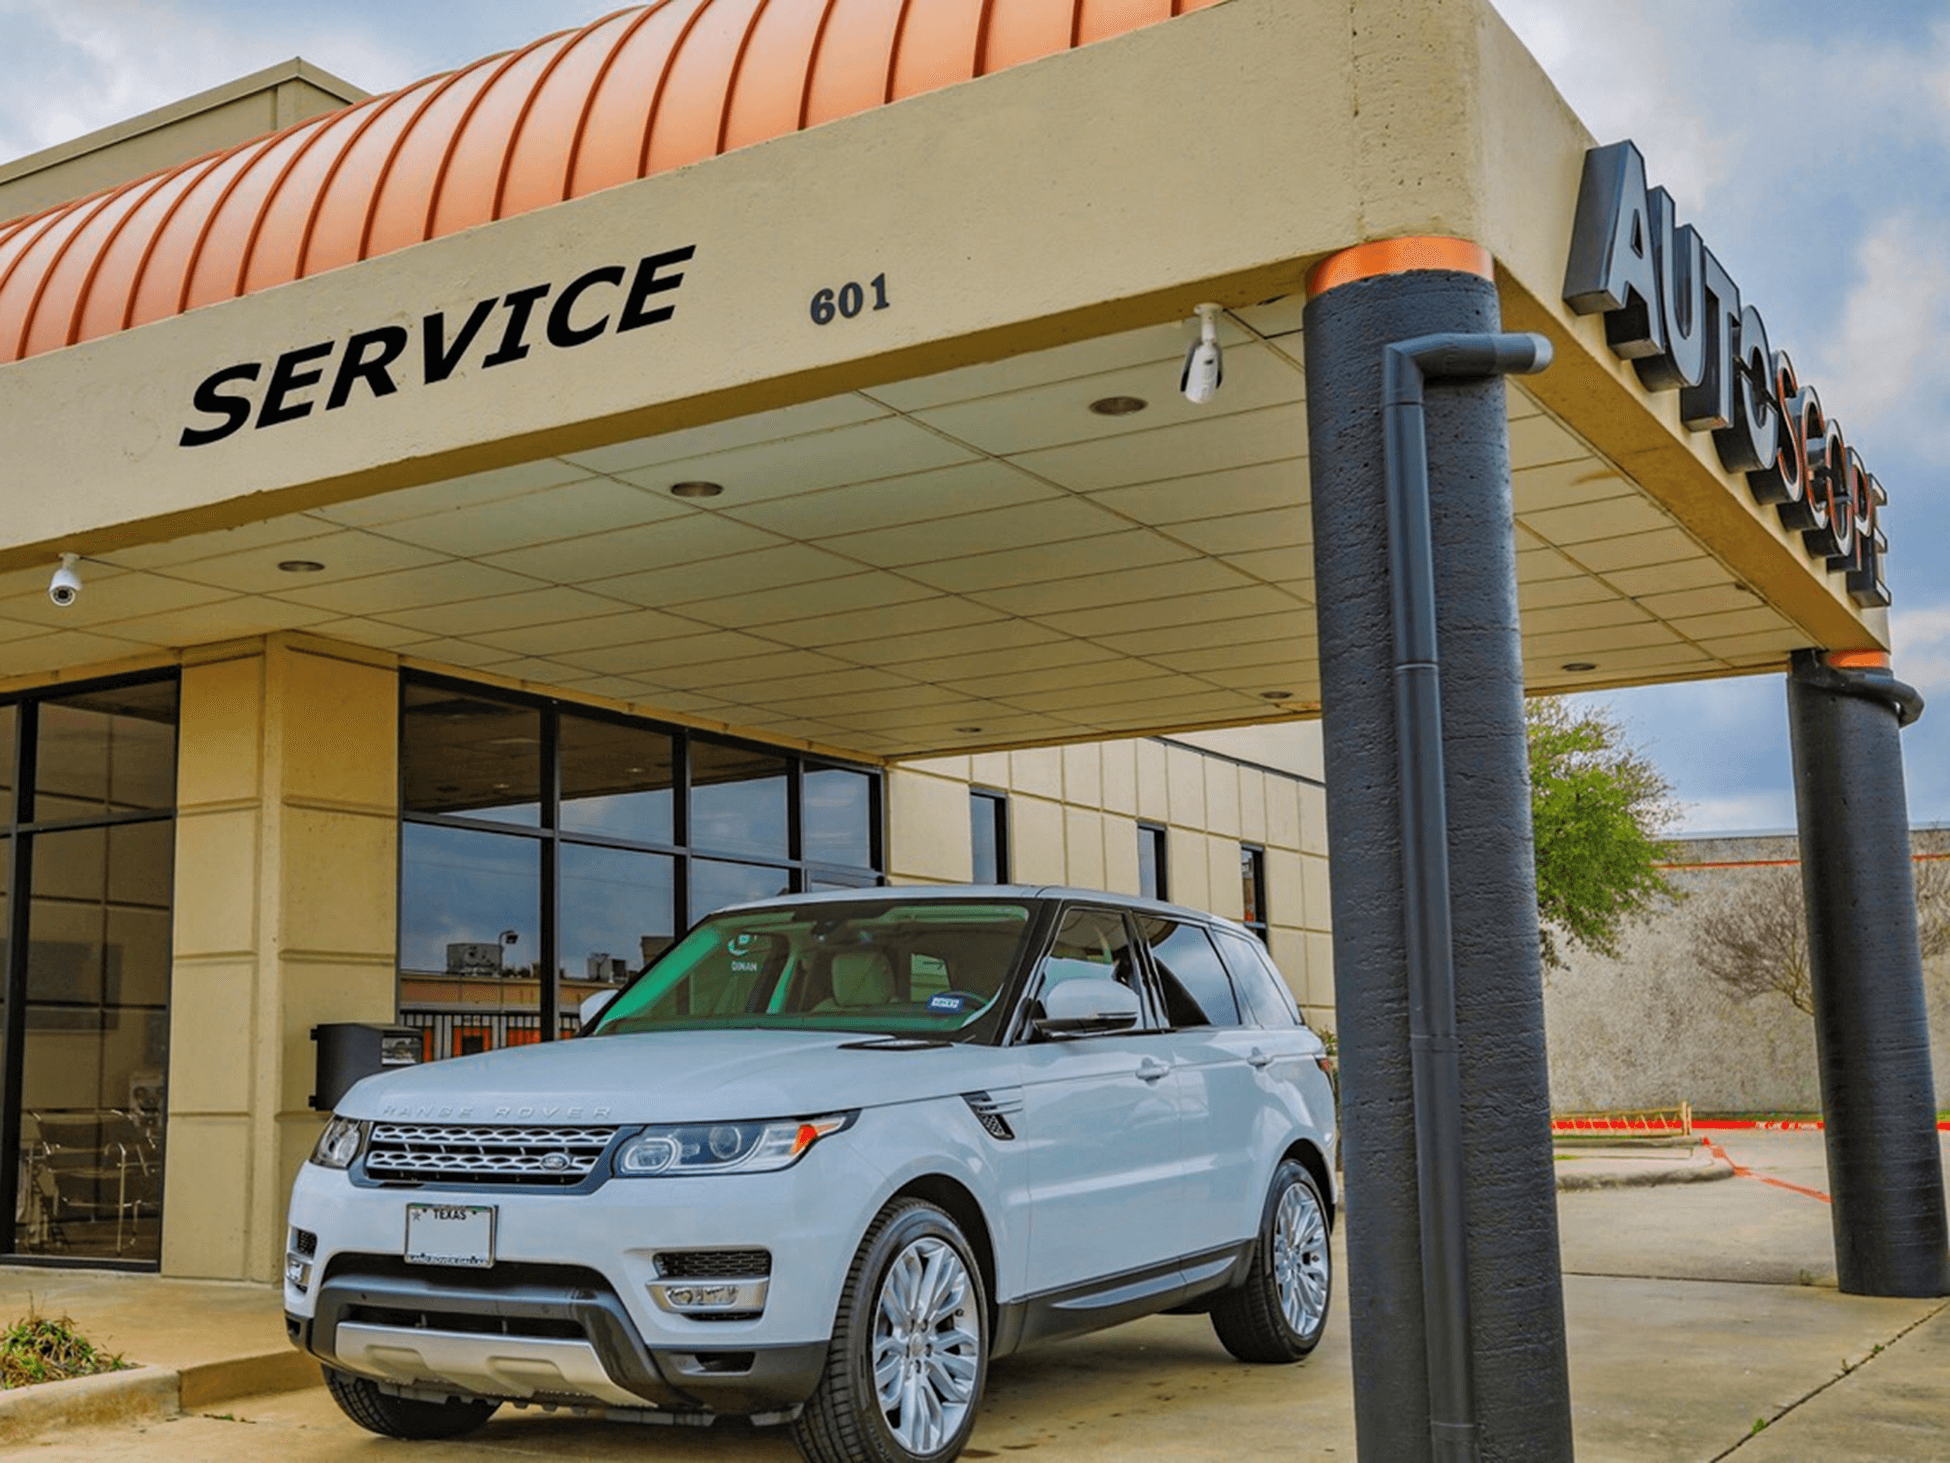 Range Rover Service in Dallas